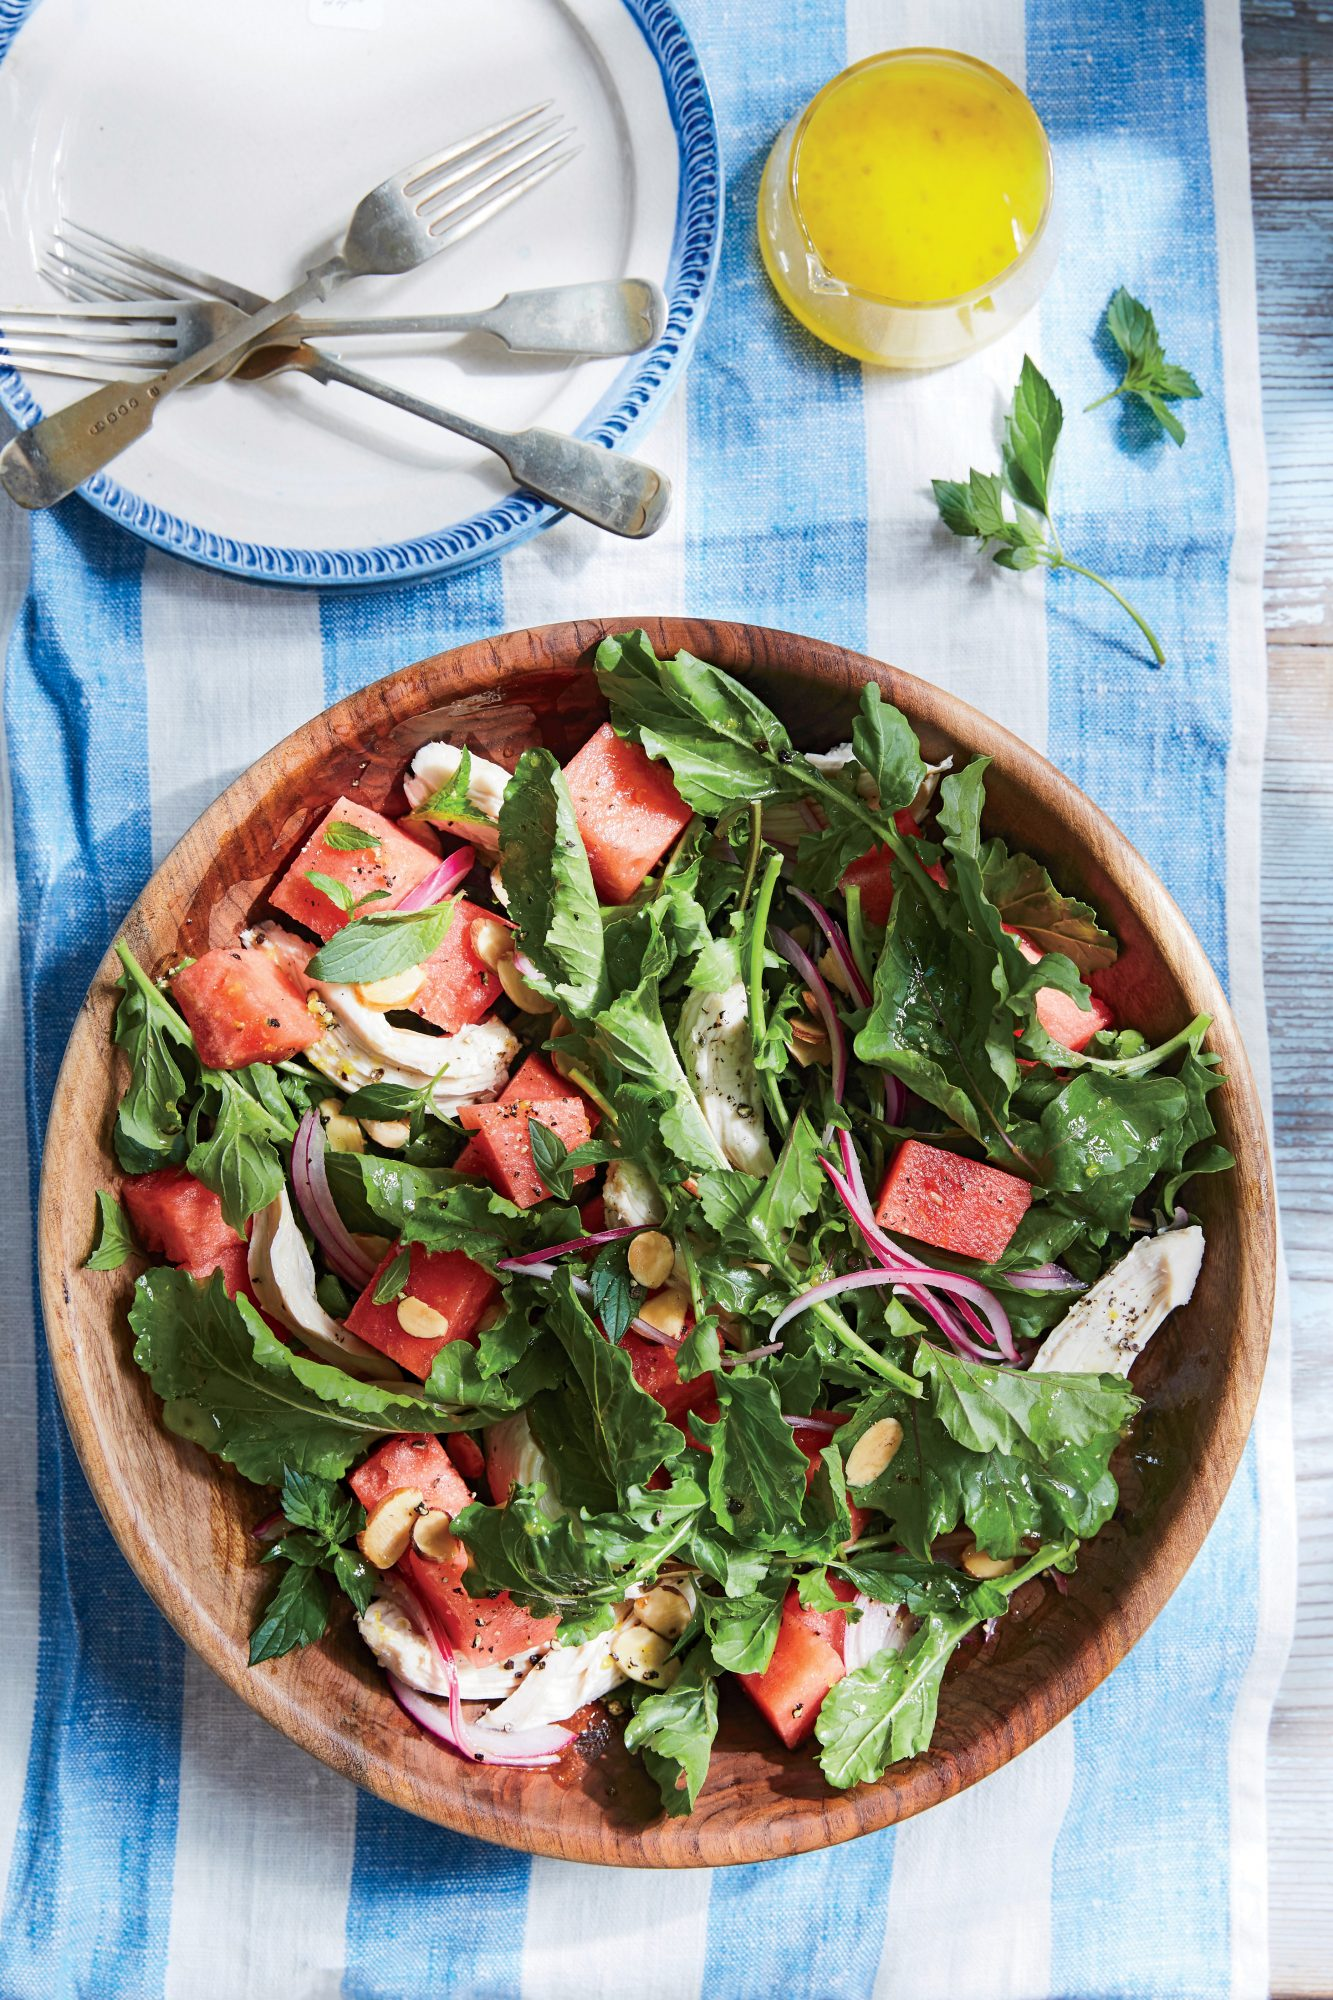 ck-Watermelon and Arugula Chicken Salad Image